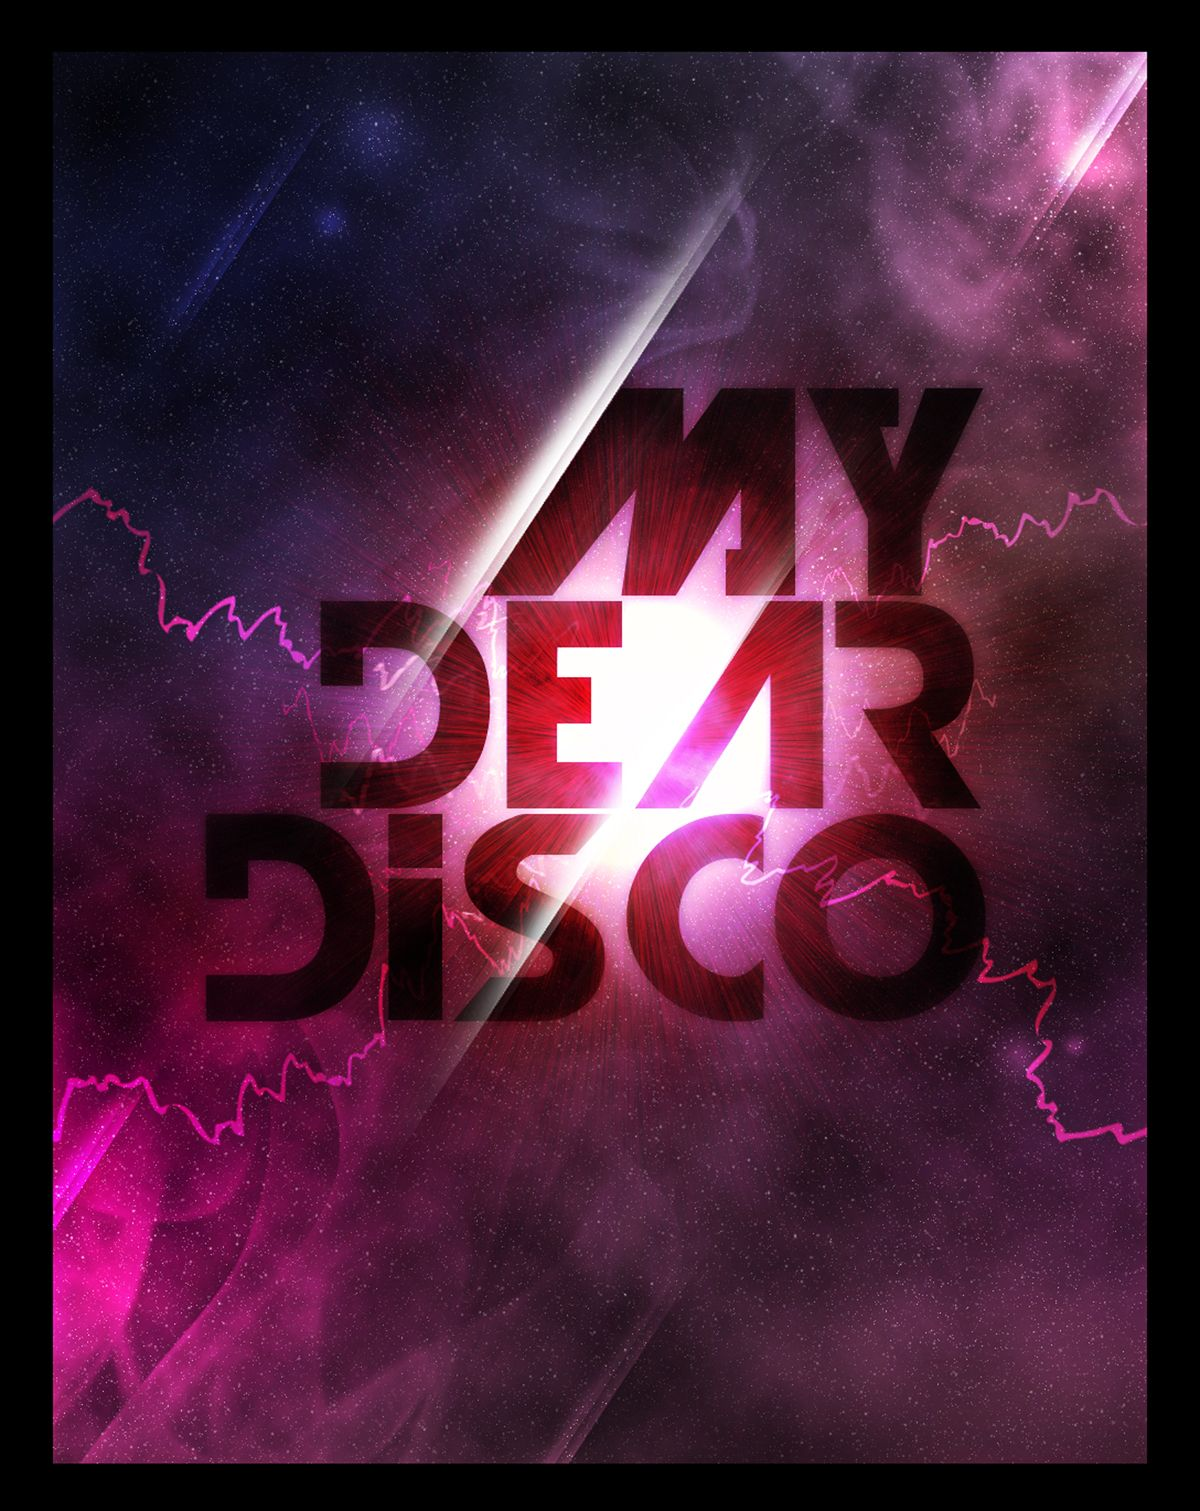 disco music graphic design - Google Search